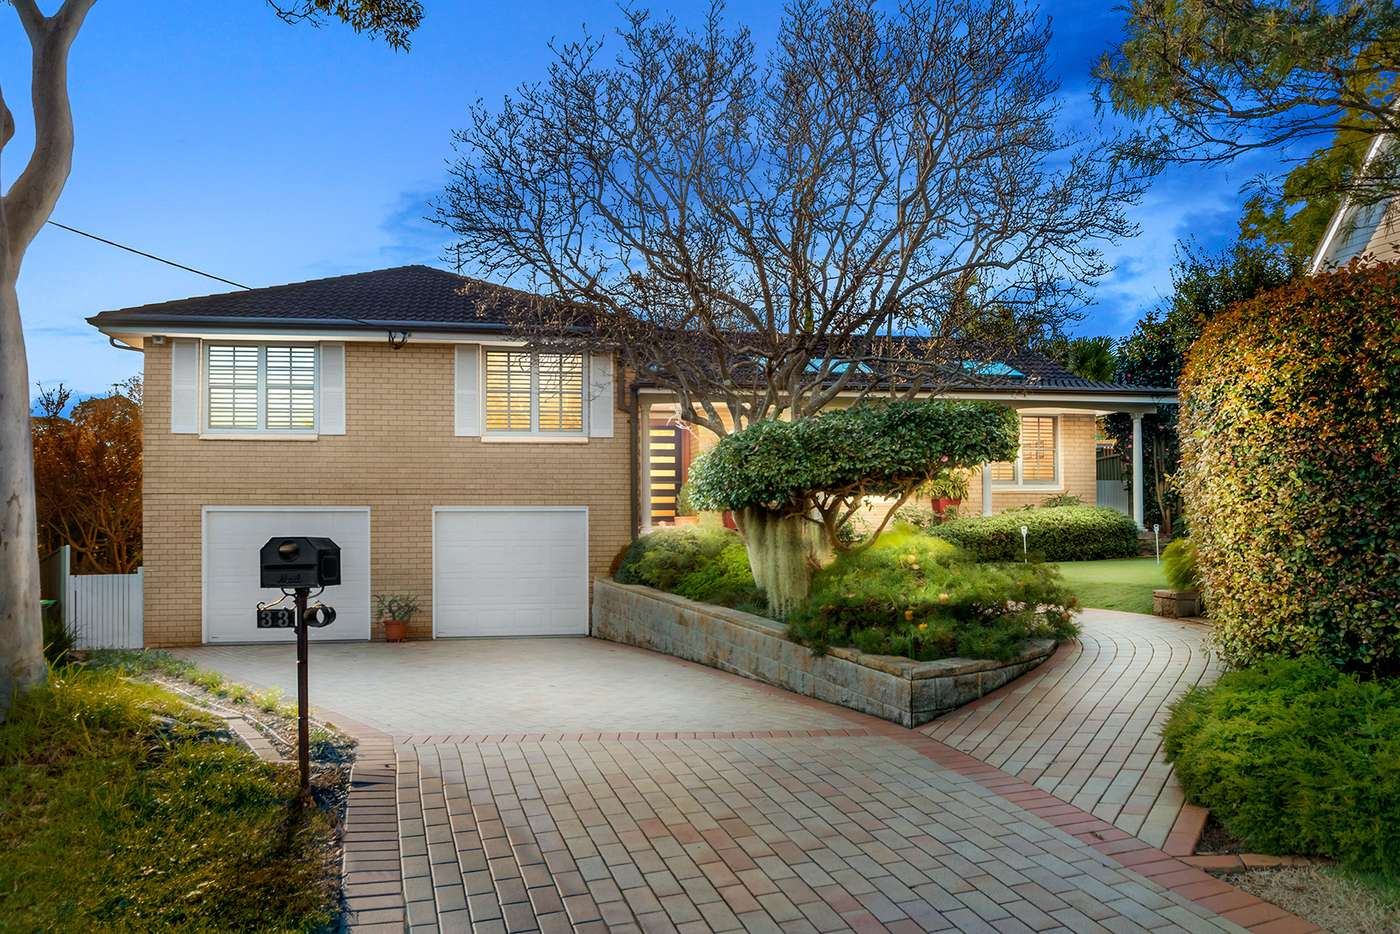 Main view of Homely house listing, 33 Lochinvar Parade, Carlingford NSW 2118